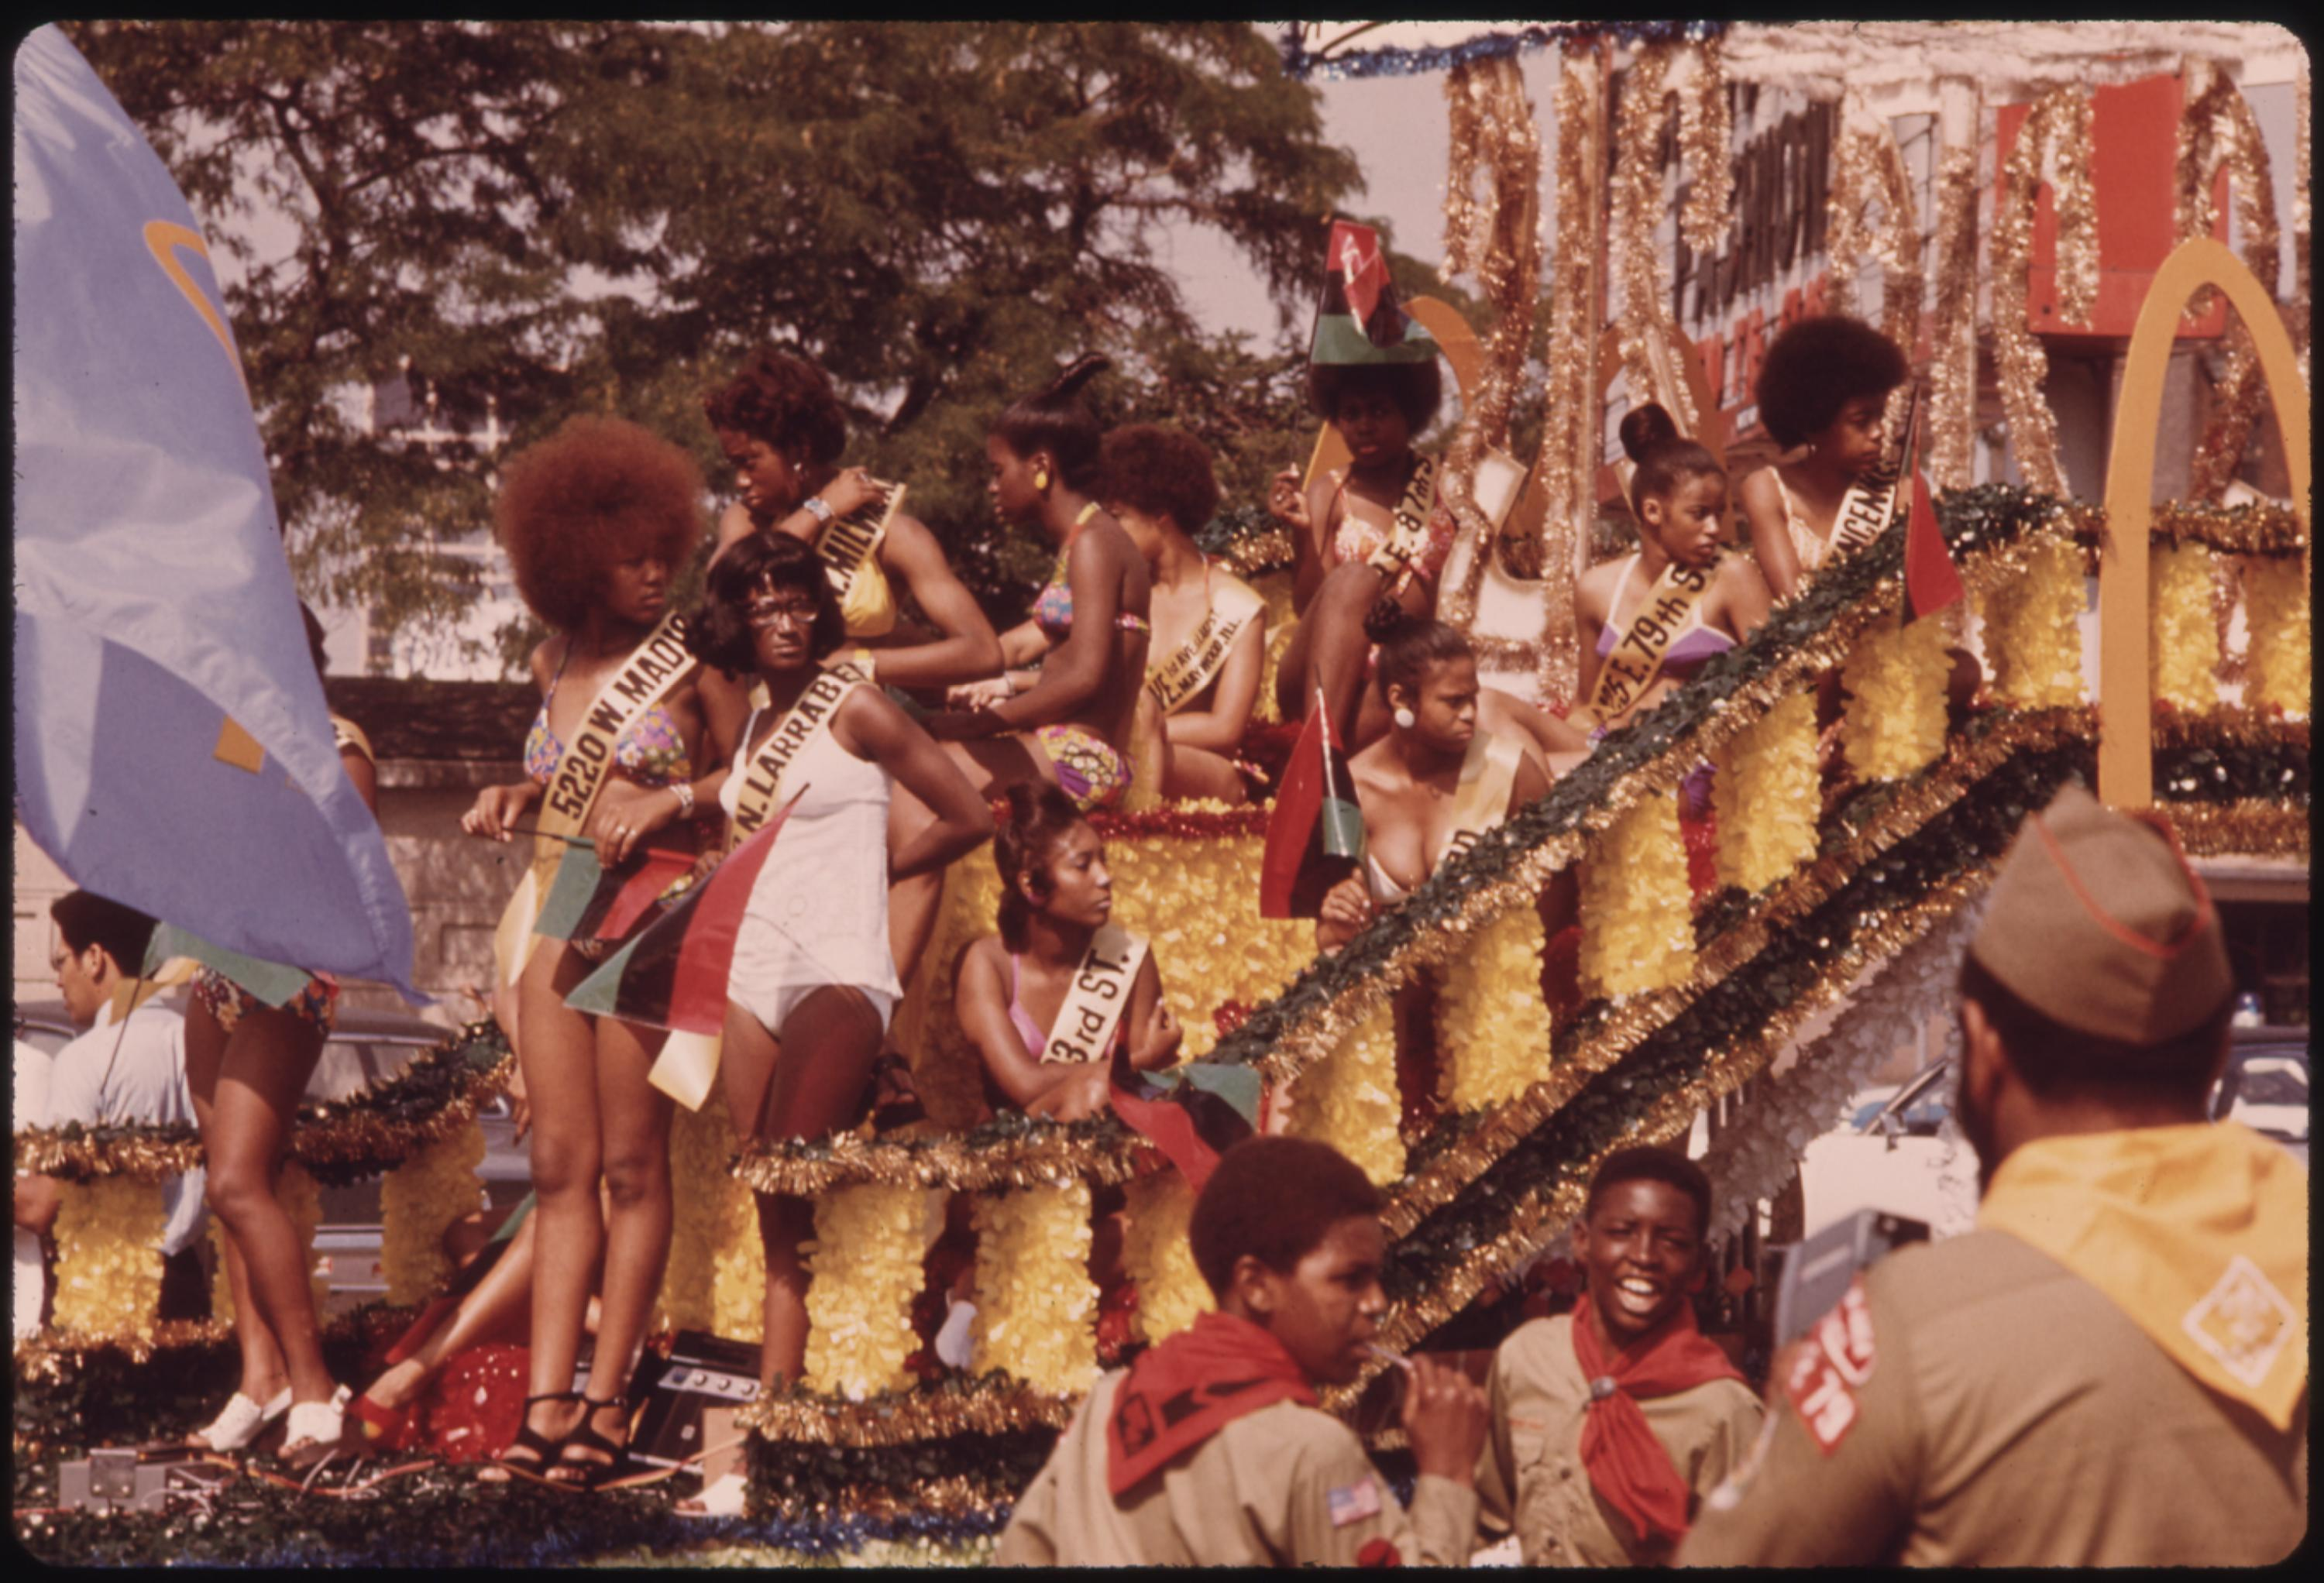 08:1973  Bud Billiken Day Parade Along Dr. Martin L. King Jr. Drive On Chicago's South Side Up To Half A Million People View One Of The Largest Annual Events Of The Year